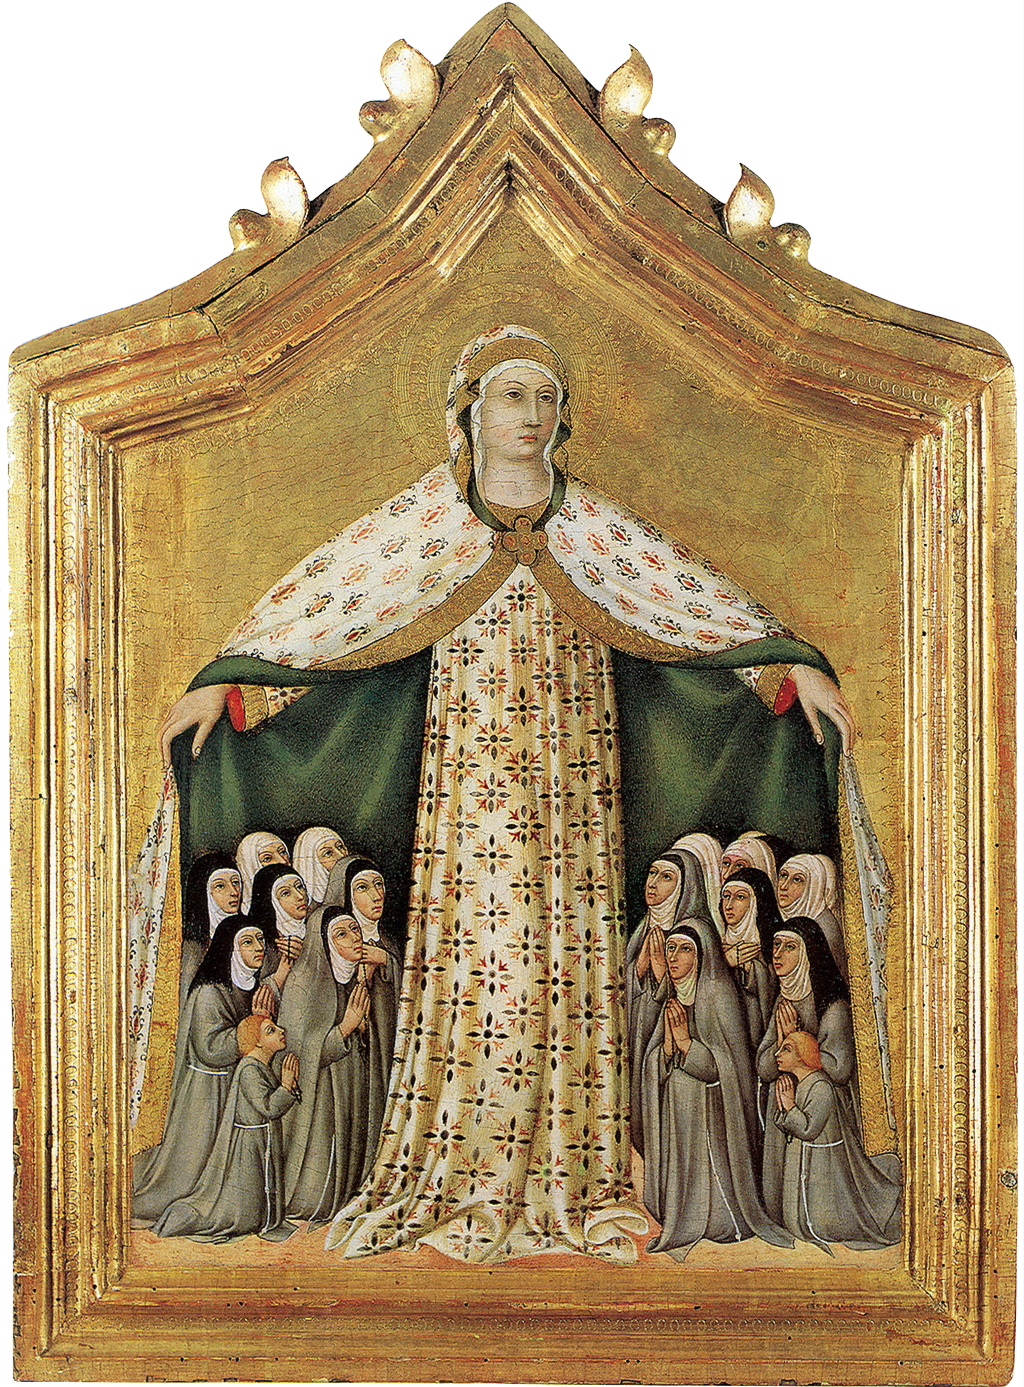 Protection under the Mantle of the Blessed Virgin